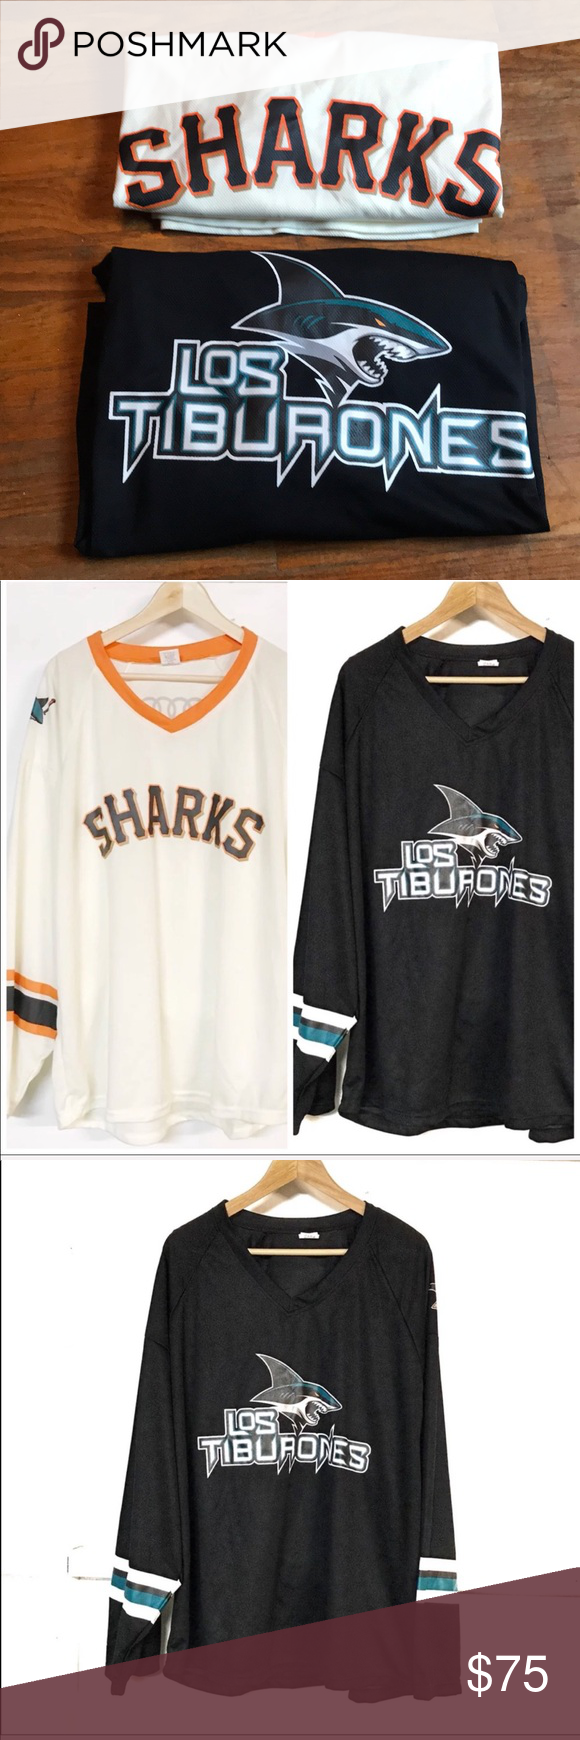 7f4fe5ac0d4 Rare Limited Edition San Jose Sharks Jerseys Med Both included in bundle  Limited Edition San Jose